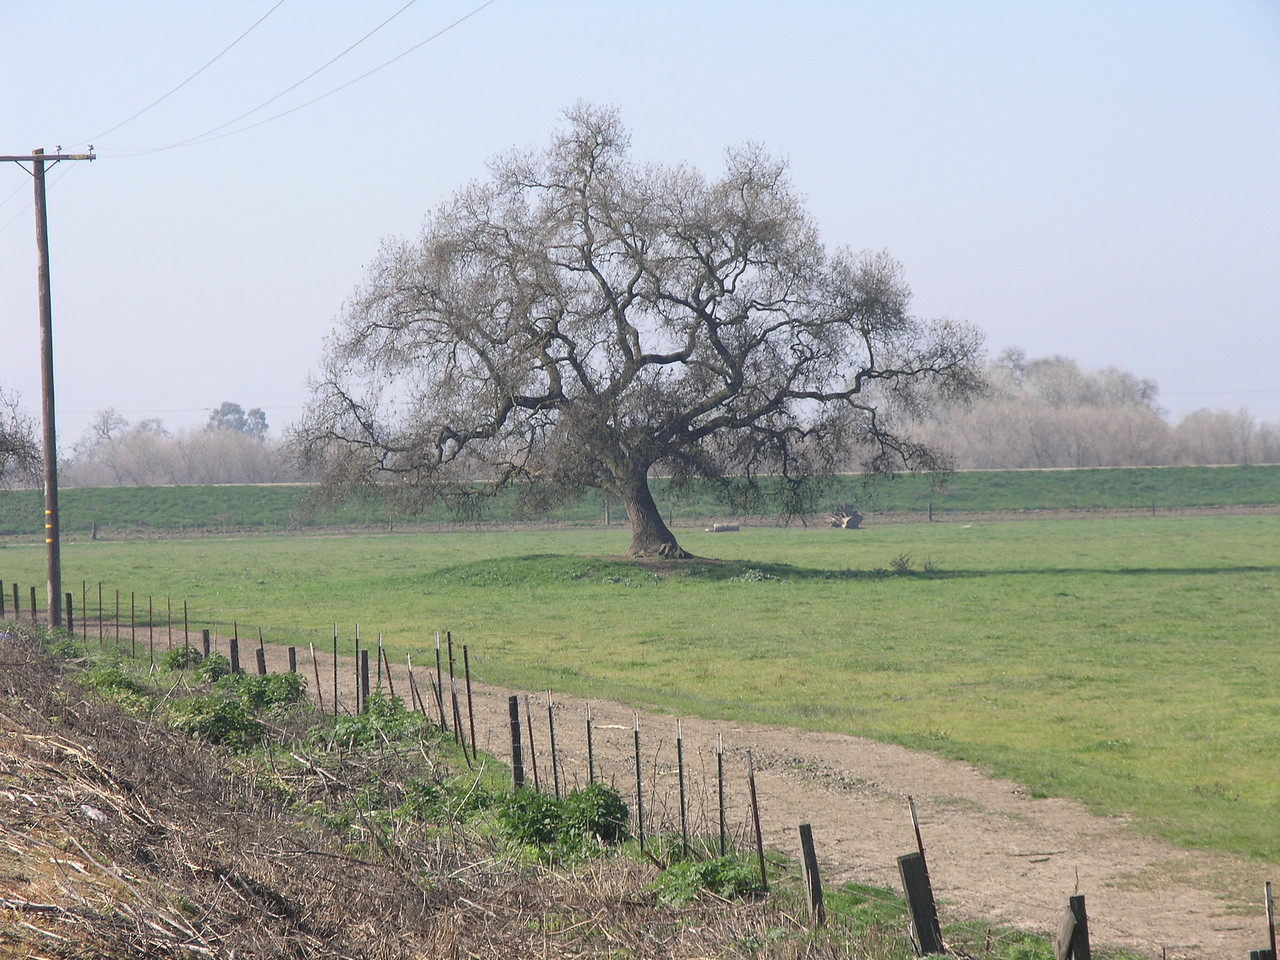 This Oak is in the San Joaquin river flood plain. This is a field run dairy cattle area.